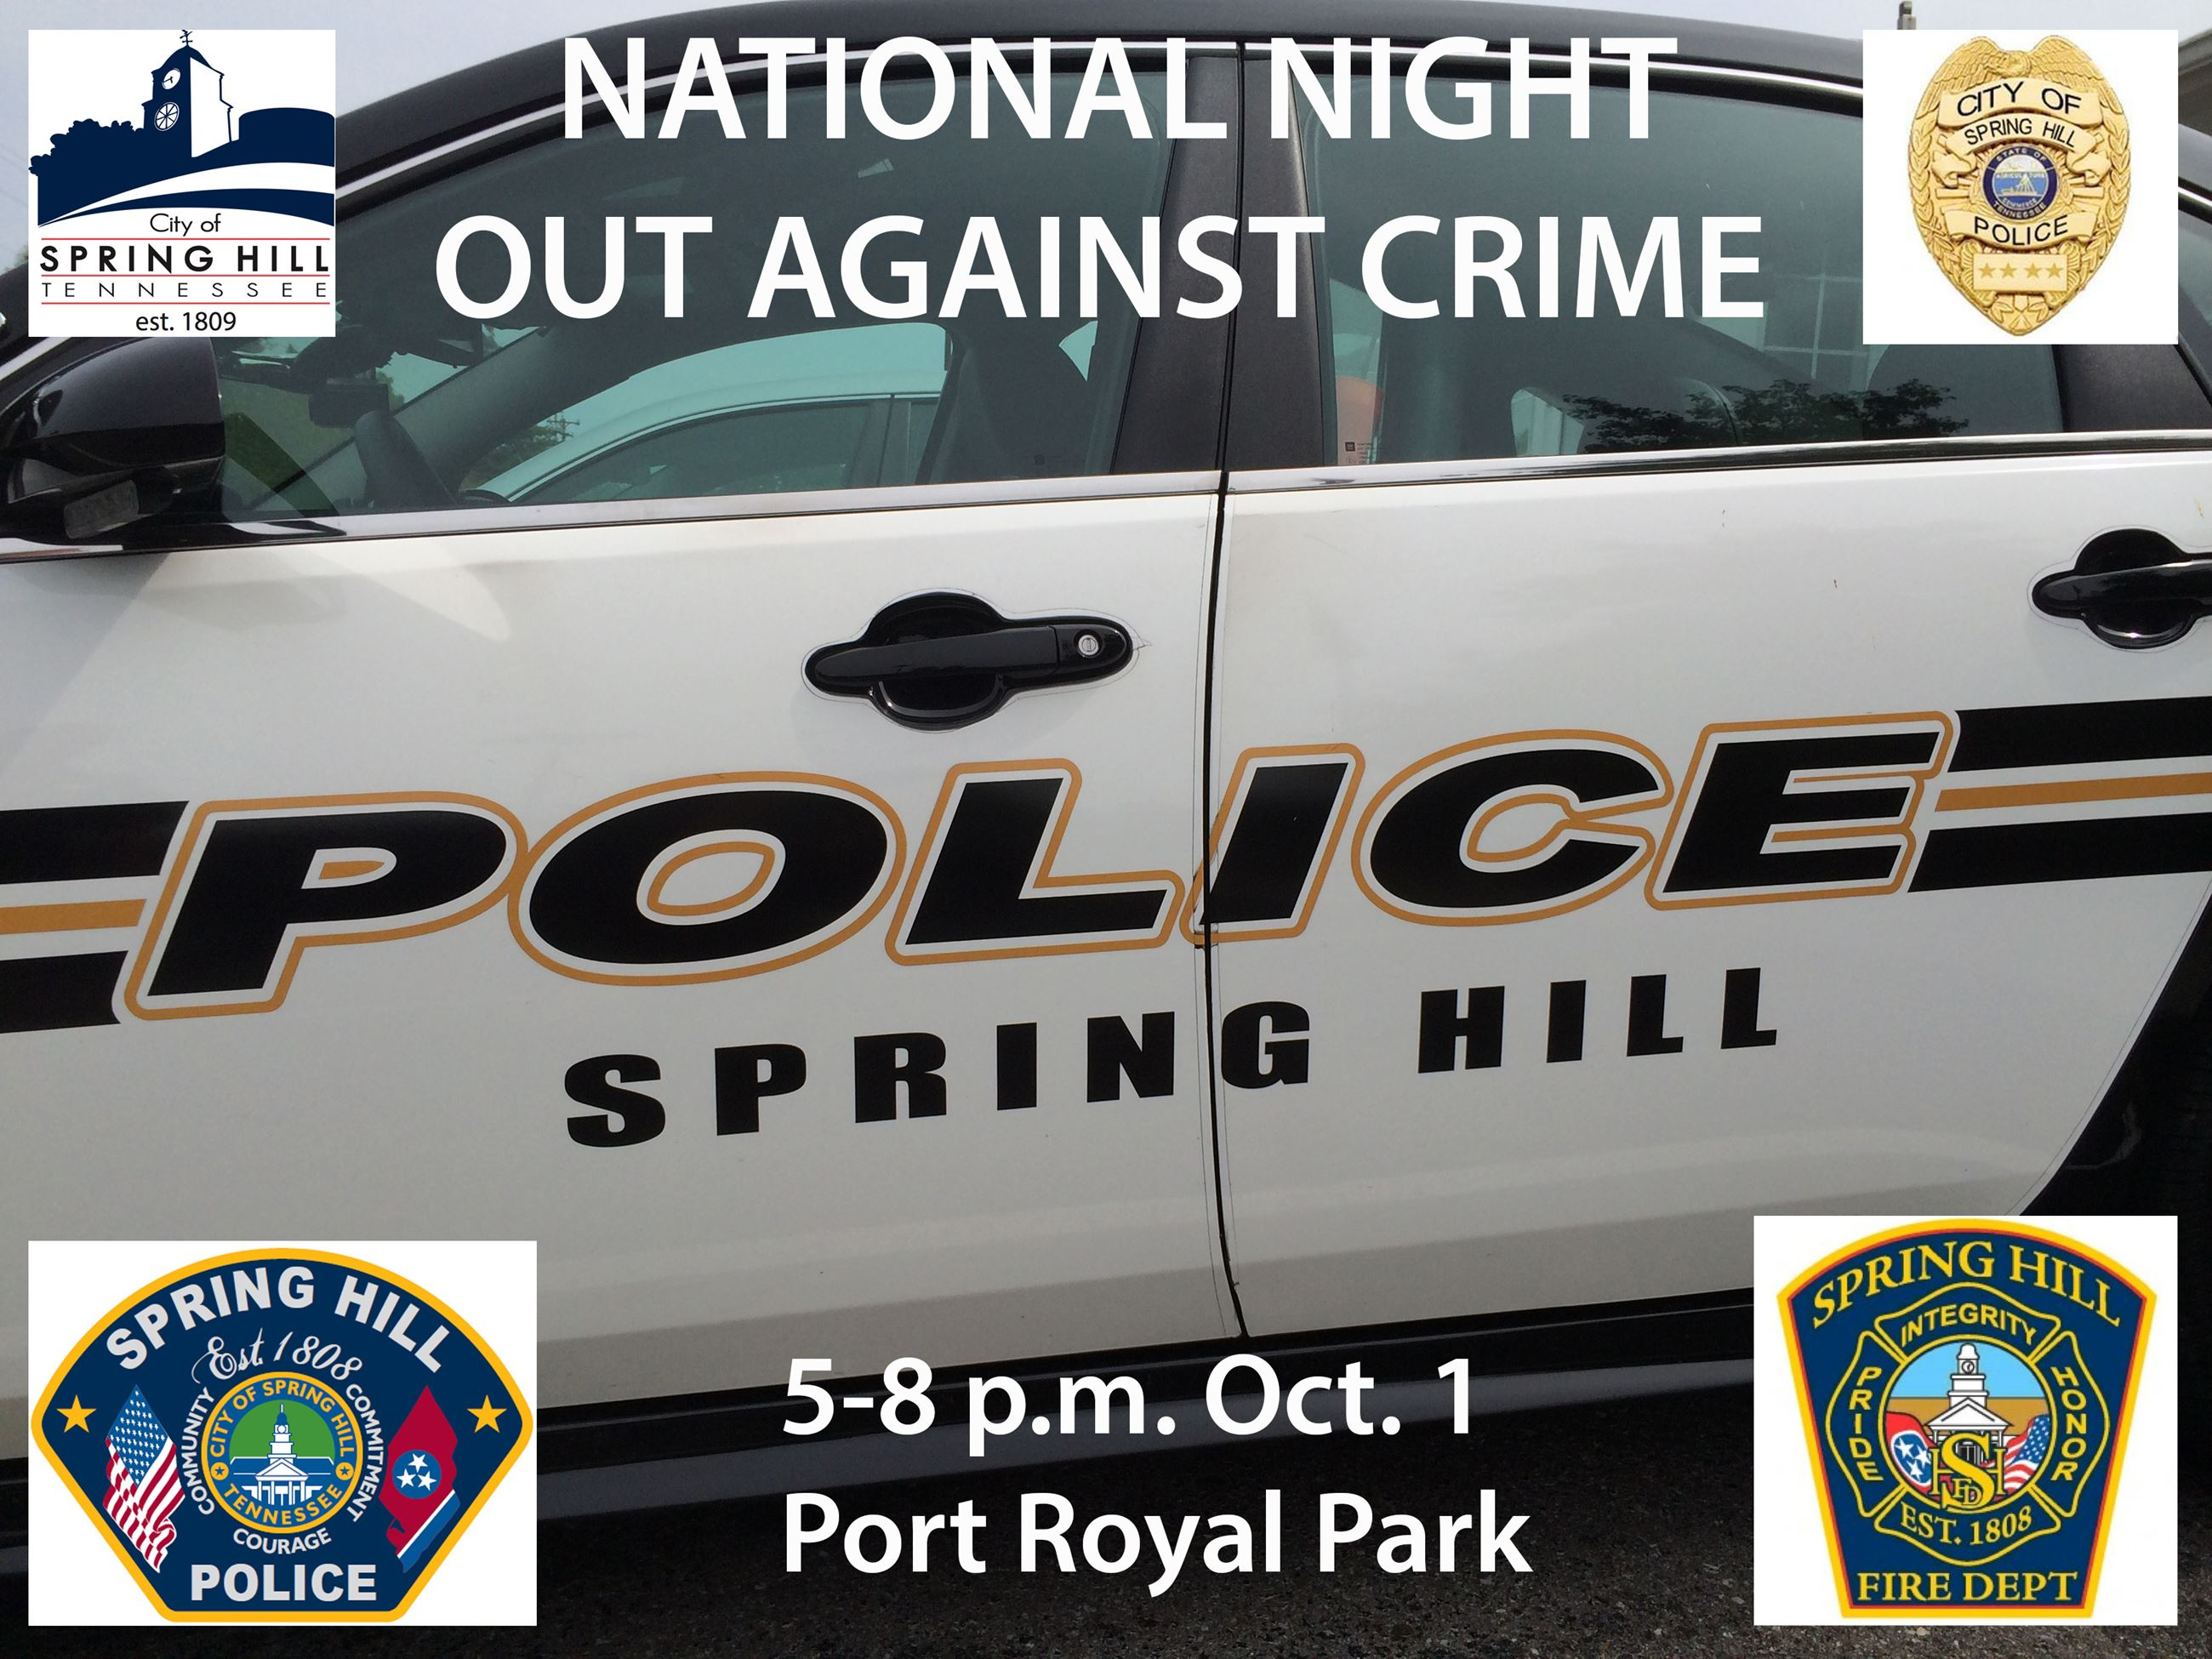 Night Out Against Crime in Spring Hill 2019